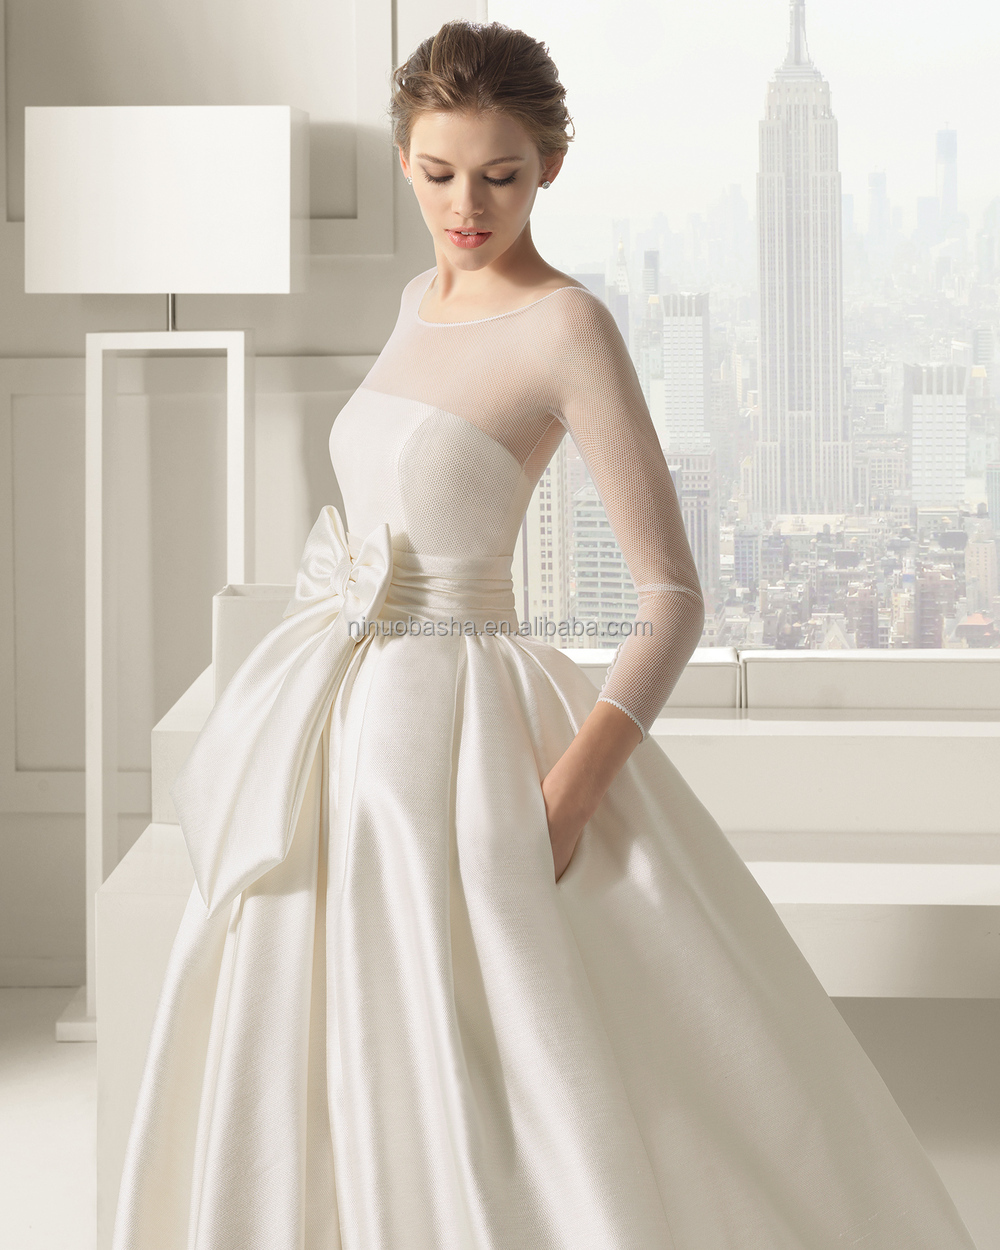 2015 Chic Ivory Ball Gown Wedding Dress Long Sleeve Sheer Covered - Covered Back Wedding Dress